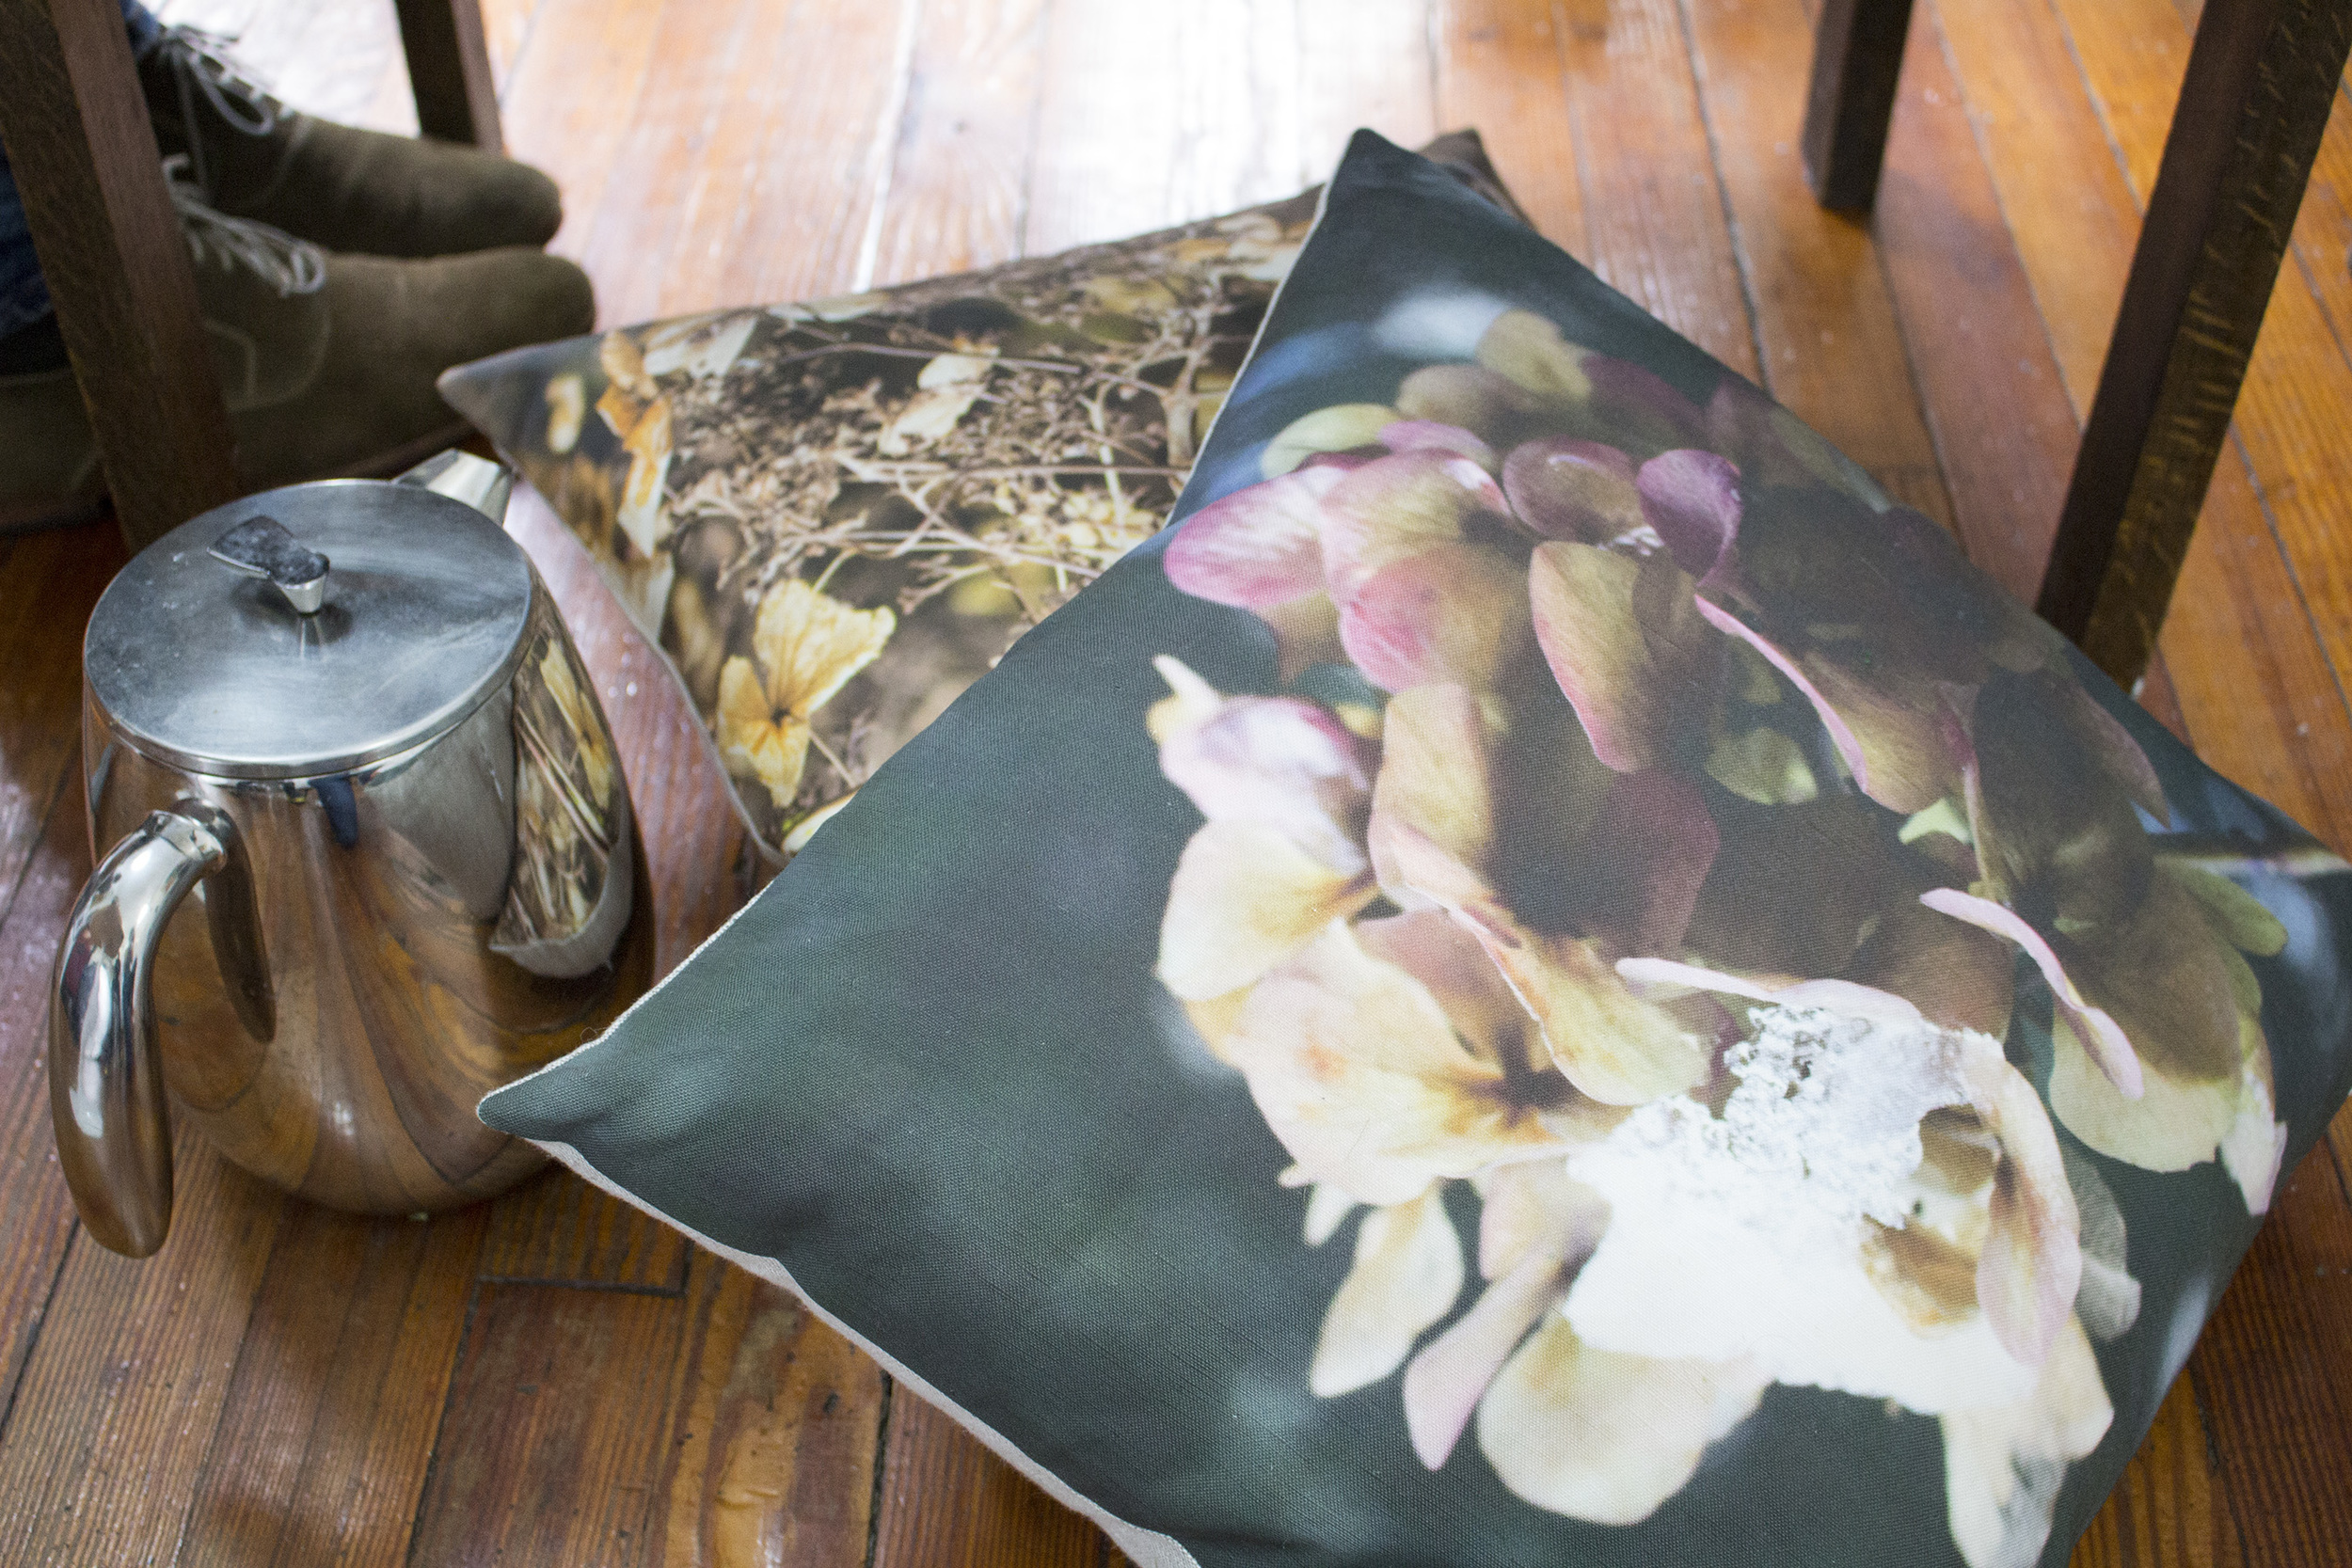 Want to give your mother(s) flowers? Give something that lasts: time, memories, and that beautiful hydrangea pillow she's been eyeing :)